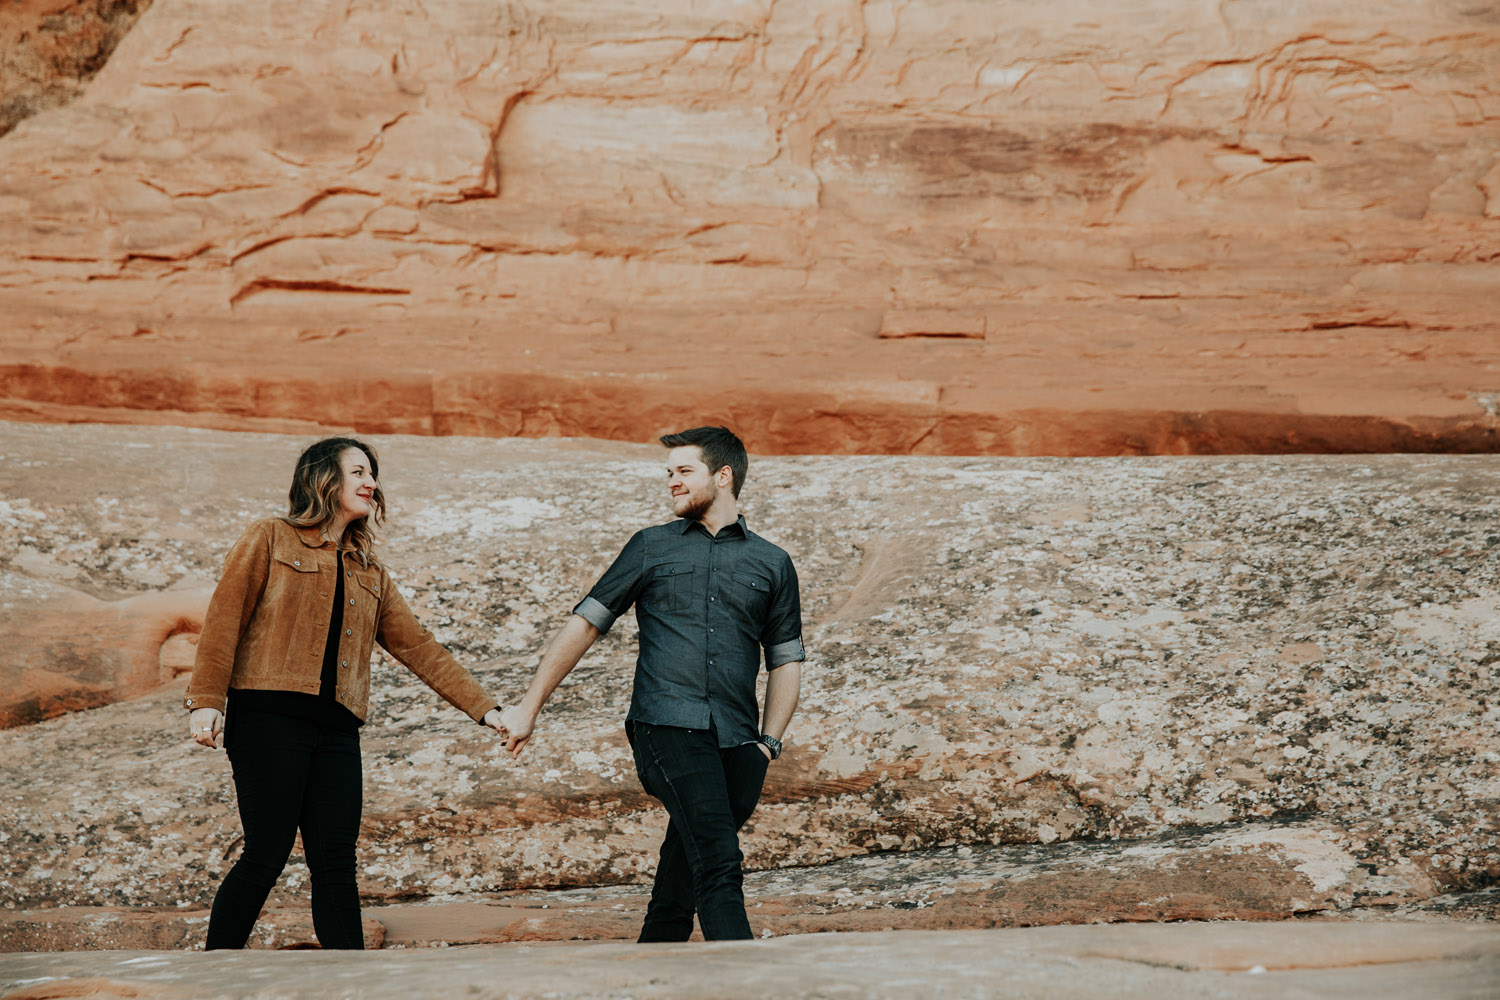 destination wedding photographers atlanta elopement photographer utah engagement photography atalie ann photo _1011.jpg